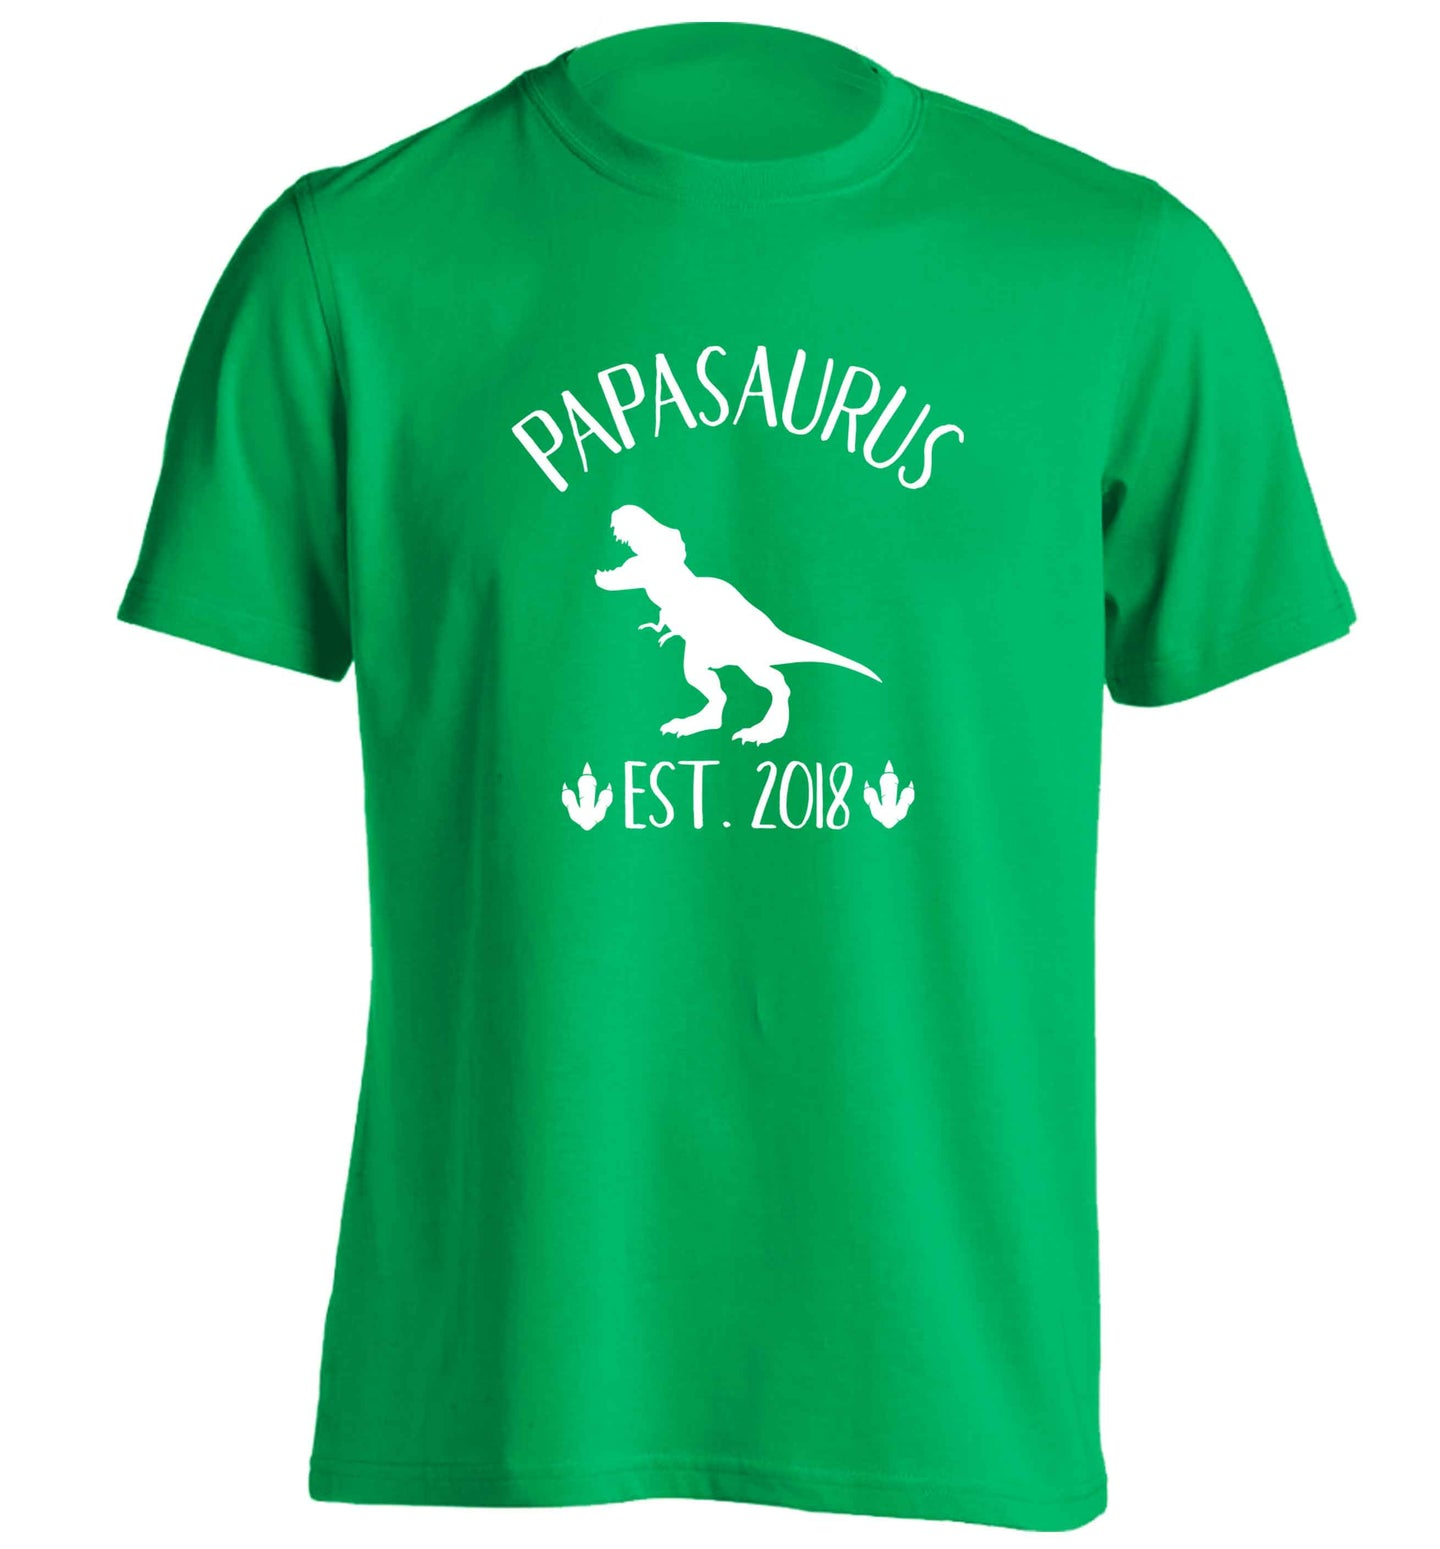 Personalised papasaurus since (custom date) adults unisex green Tshirt 2XL